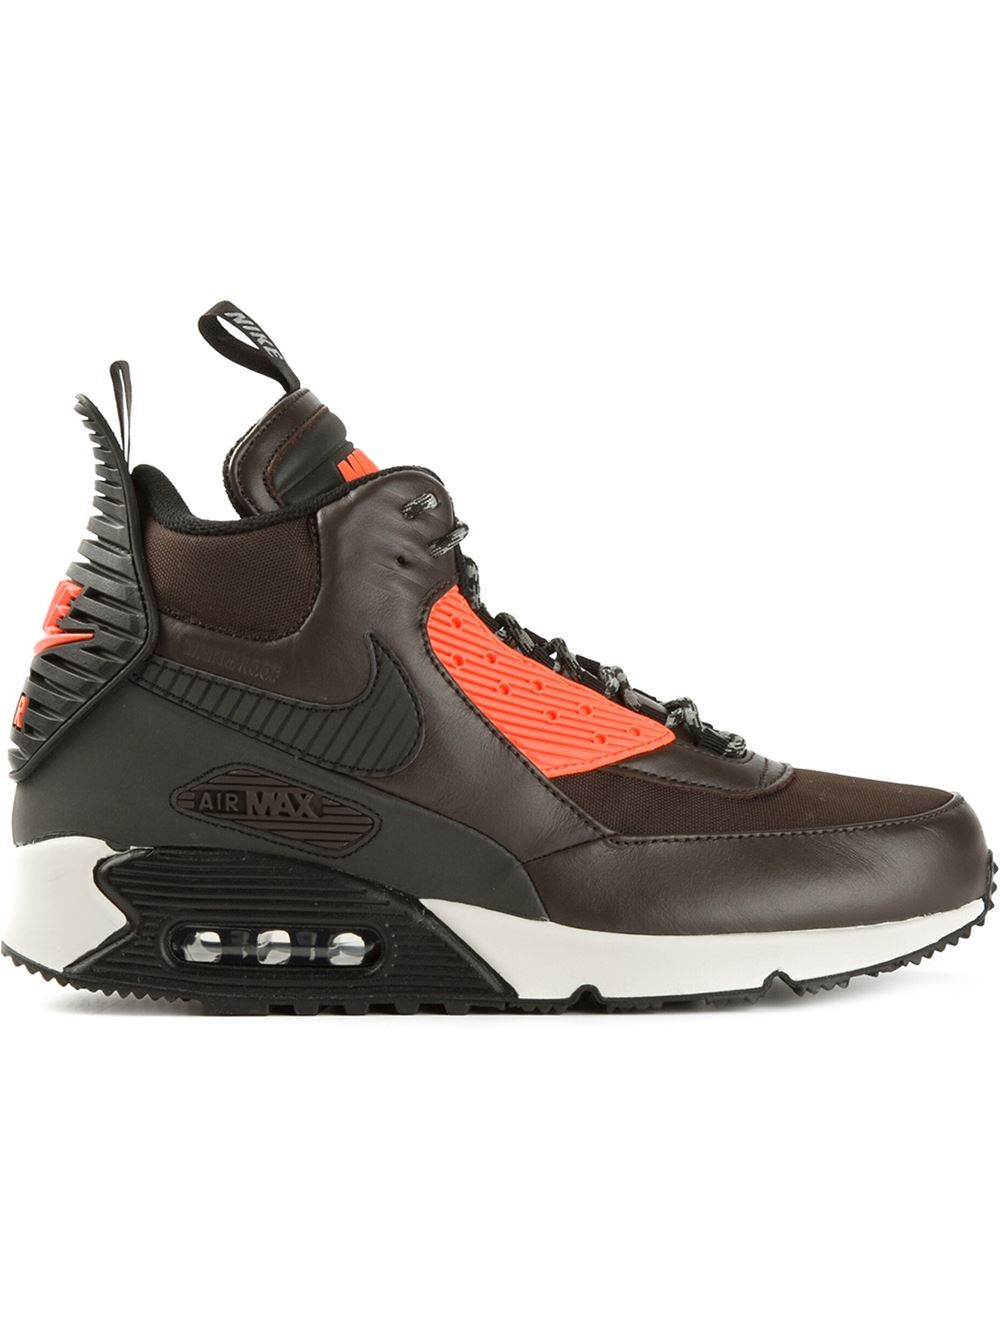 4b8c83469cf67 ... sweden gallery. previously sold at farfetch mens sneakerboots mens air  max 90 sneakers 60c96 f4594